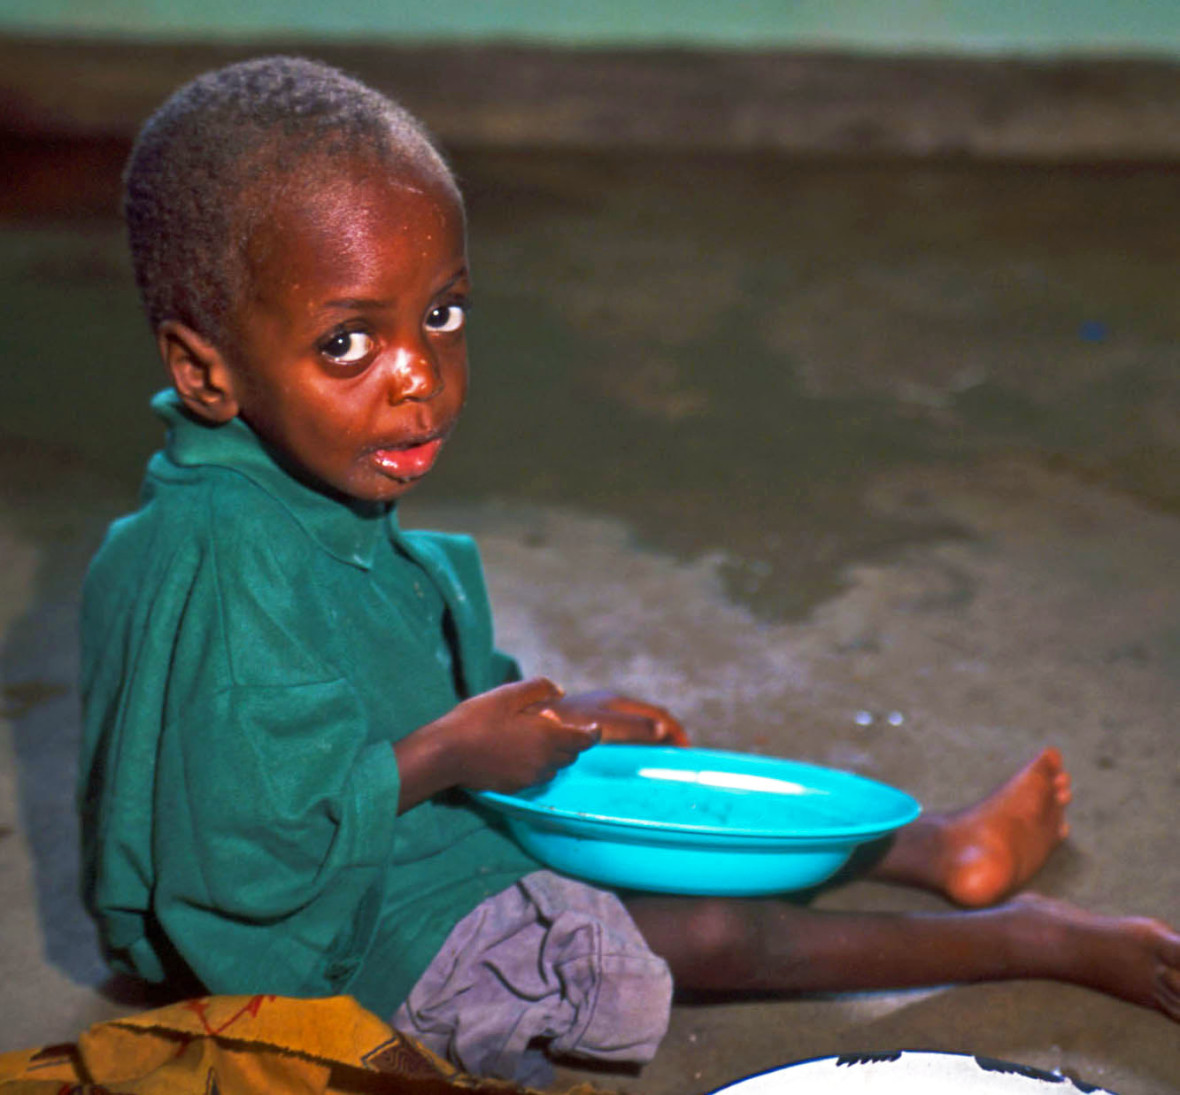 A young boy eating